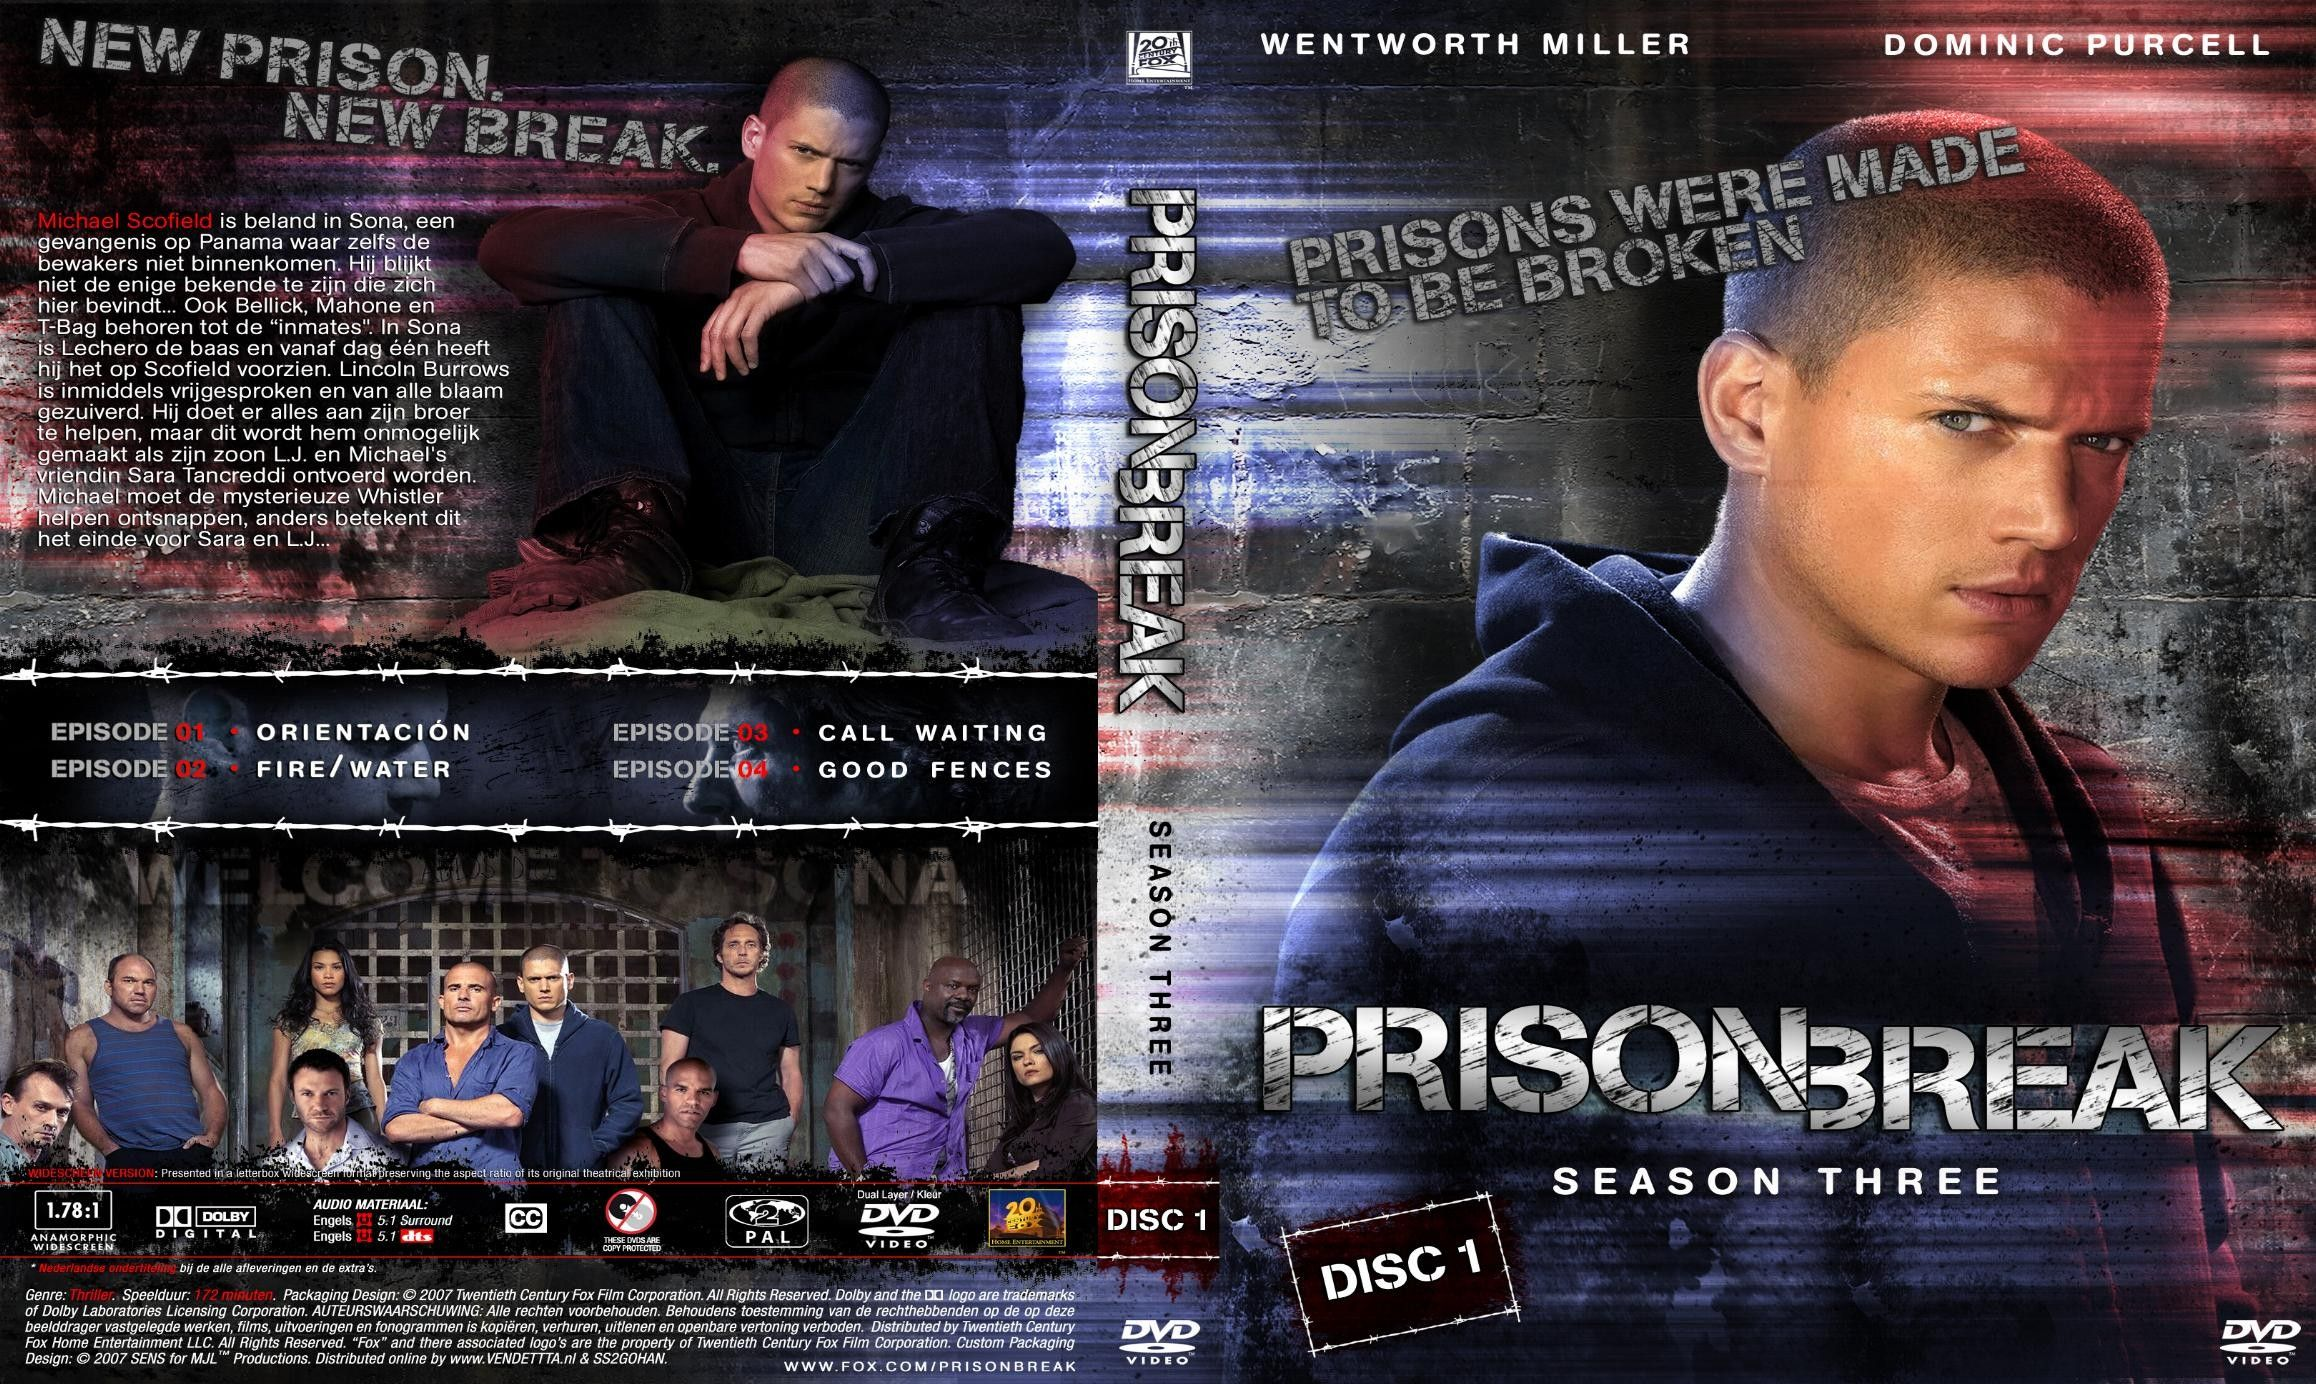 Prison Break Season 3 Dvd 01 Dvd Nl Dvd Covers Cover Century Over 500 000 Album Art Covers For Free